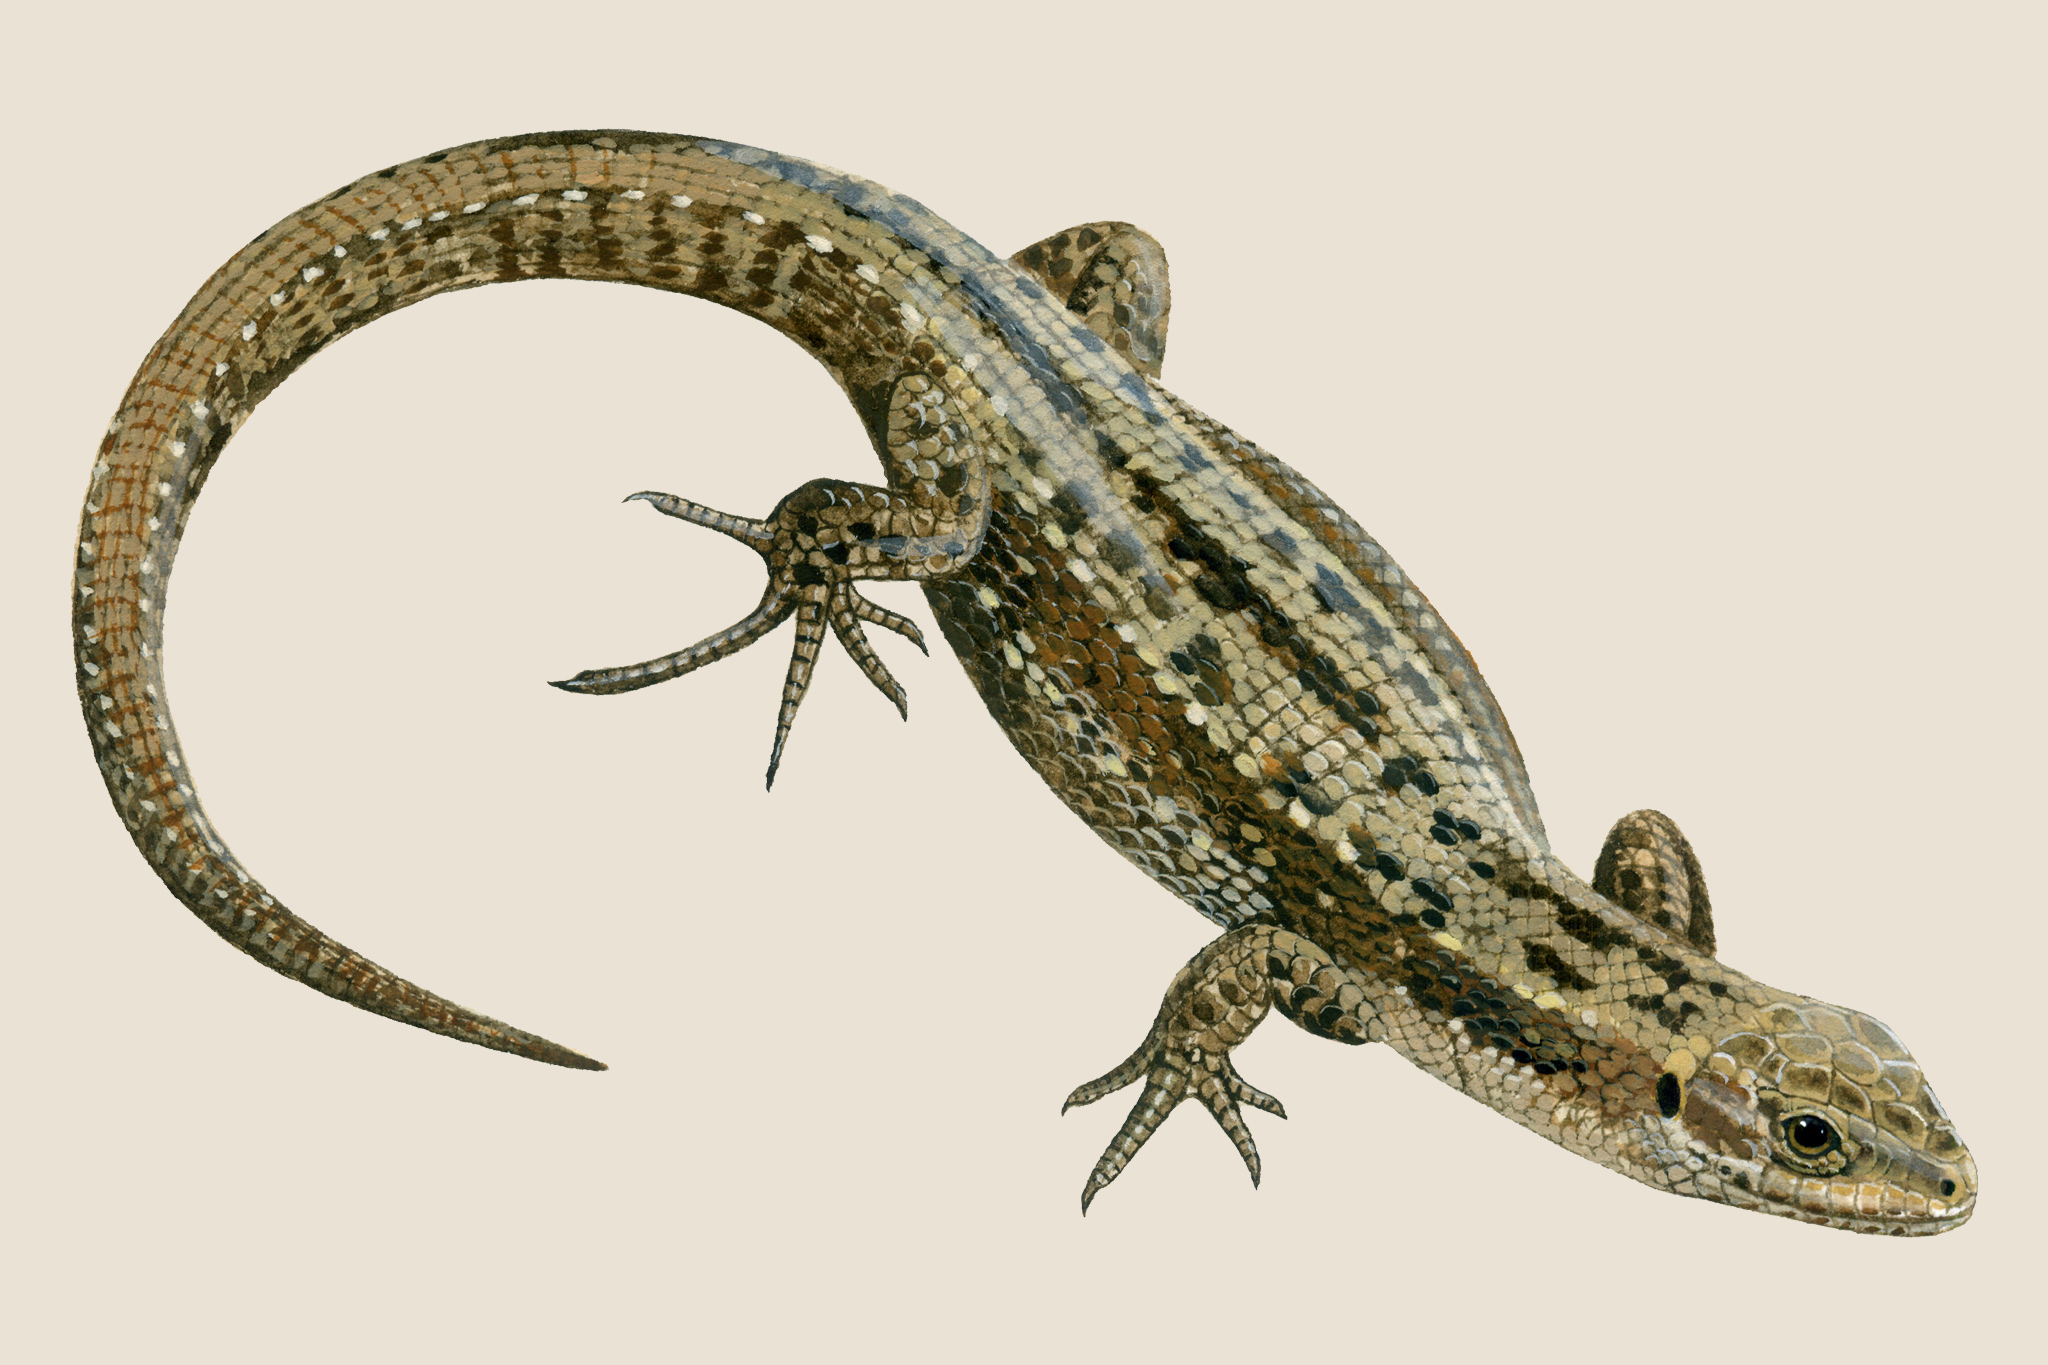 common-lizard-3